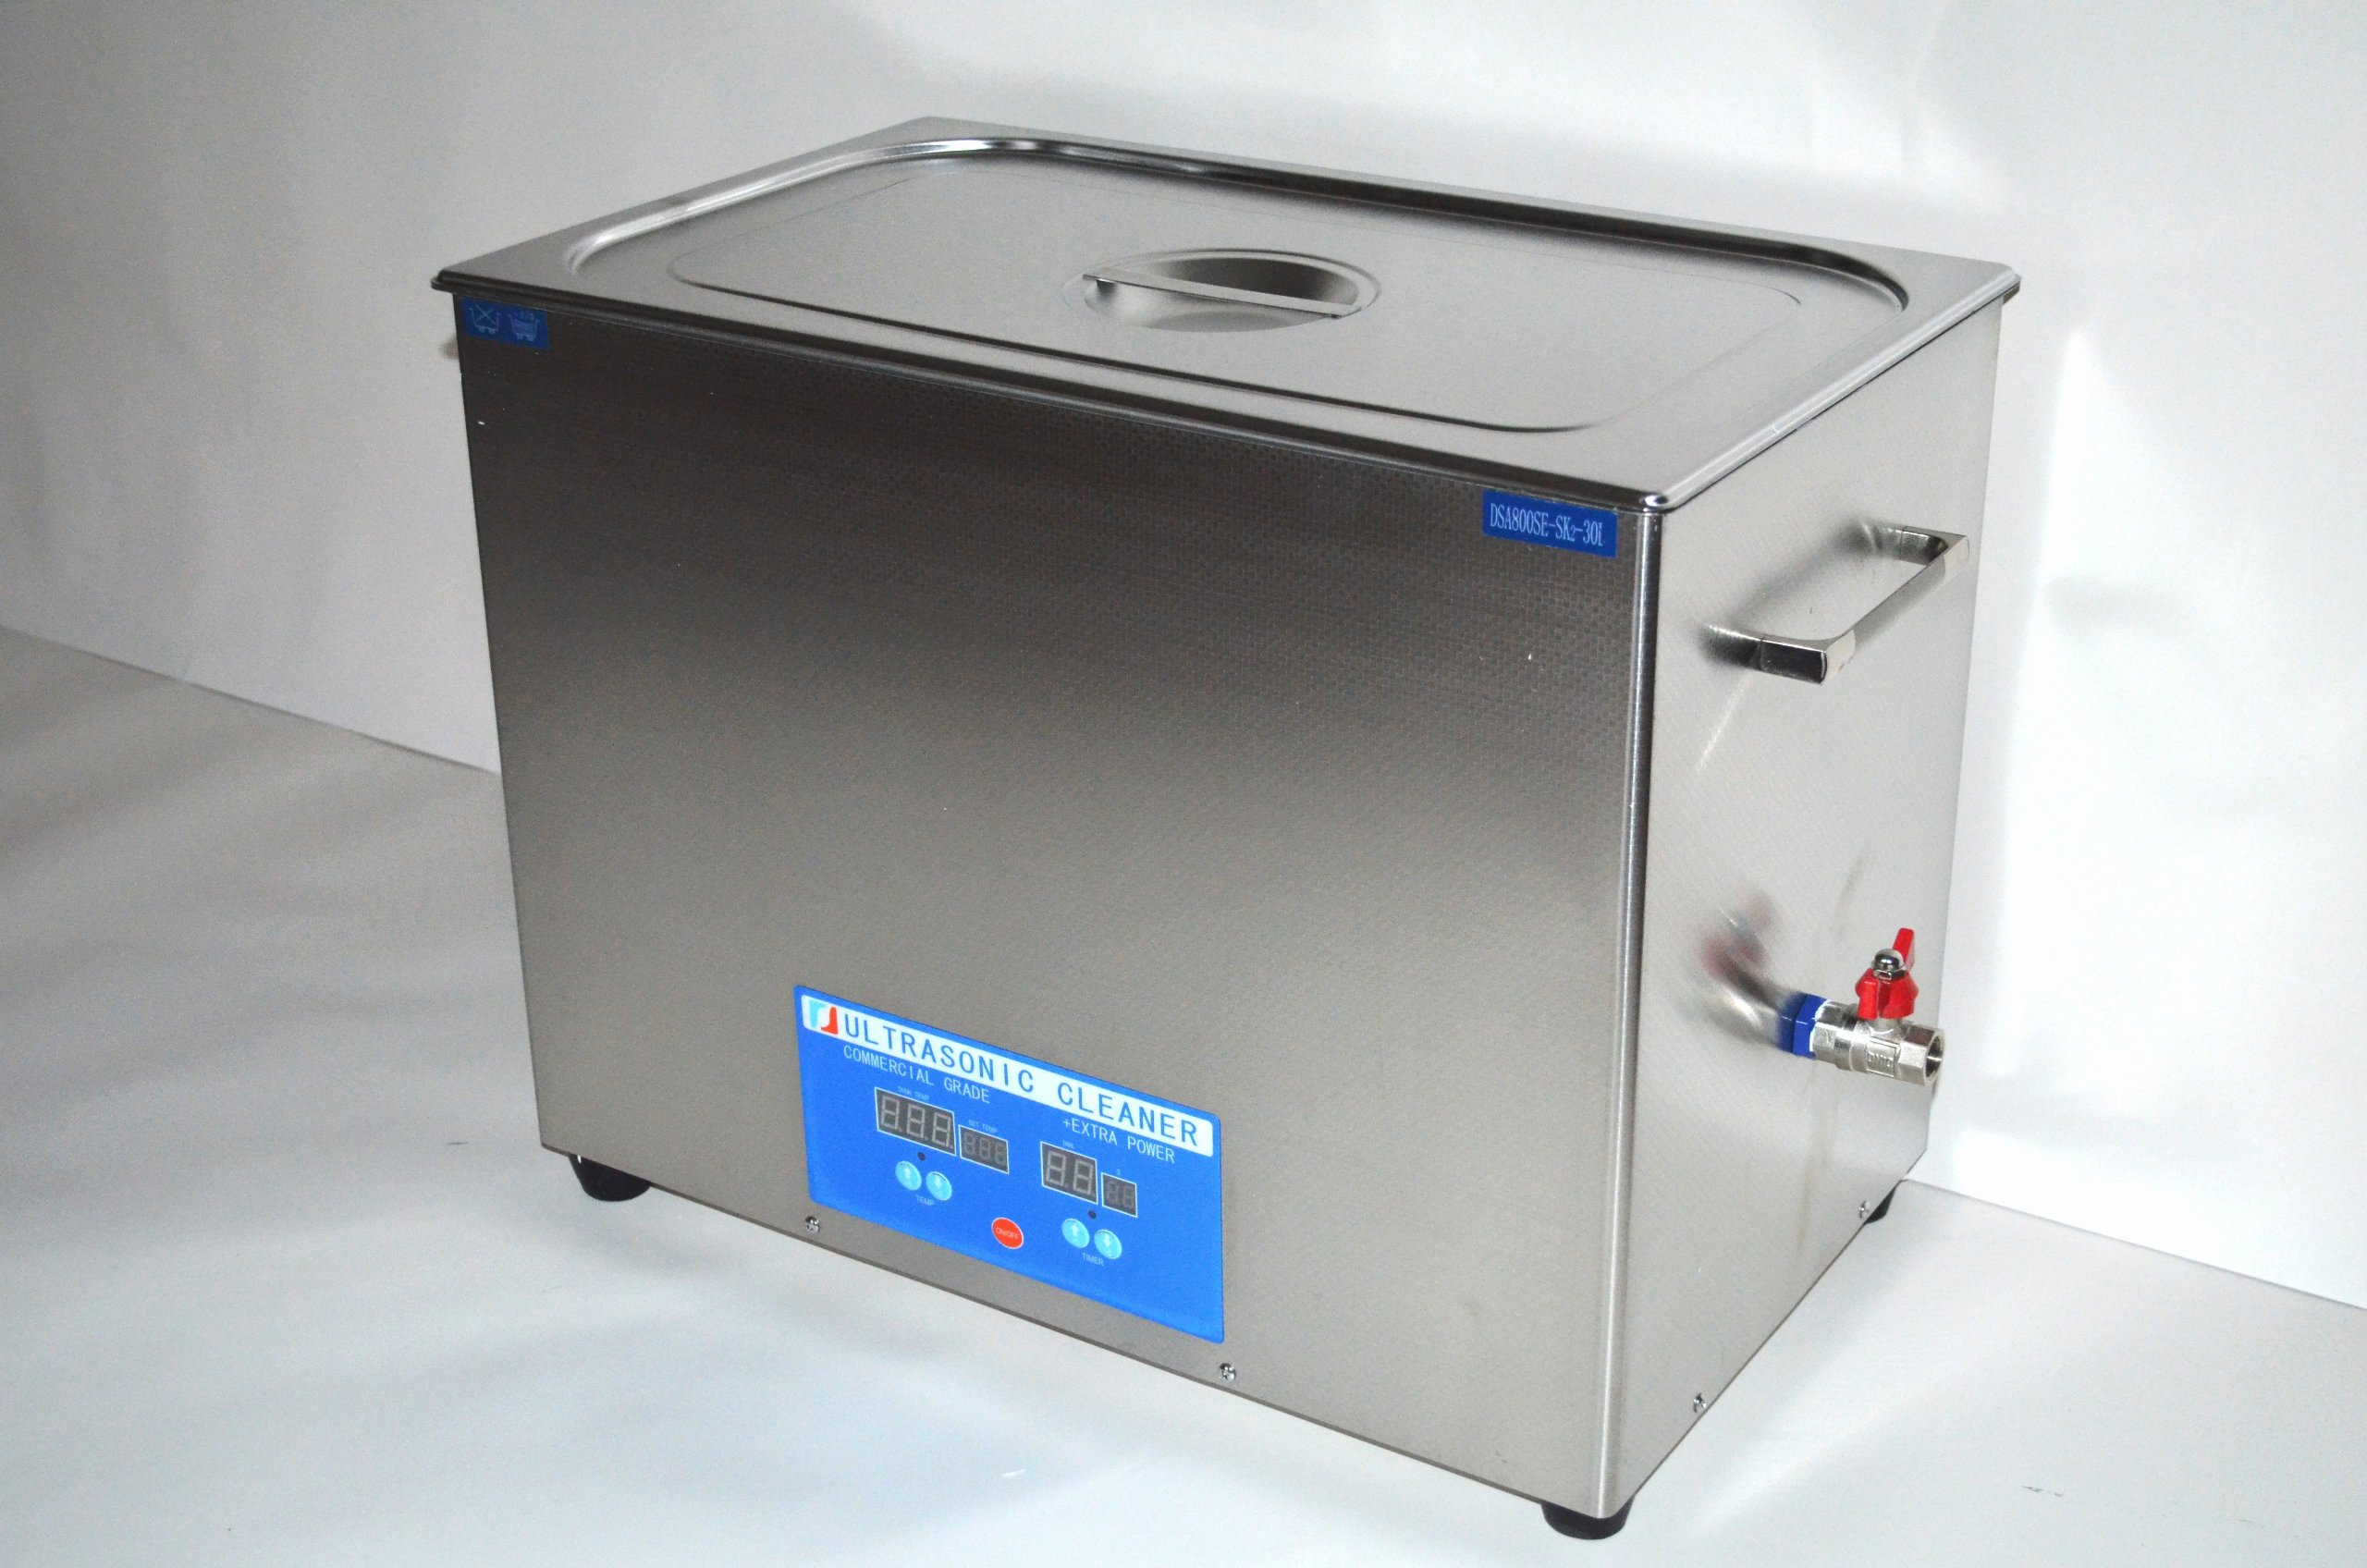 ''COMMERCIAL+ EXTRA POWER'' SERIES DSA800SE-SK2 30L (8 GAL) 1600 WATTS 40KHz DIGITAL HEATED INDUSTRIAL STAINLESS STEEL ULTRASONIC PARTS CLEANER MACHINE WITH INBOARD BASKET AND TOP COVER LID by Desen Precision Instruments Co (Image #5)